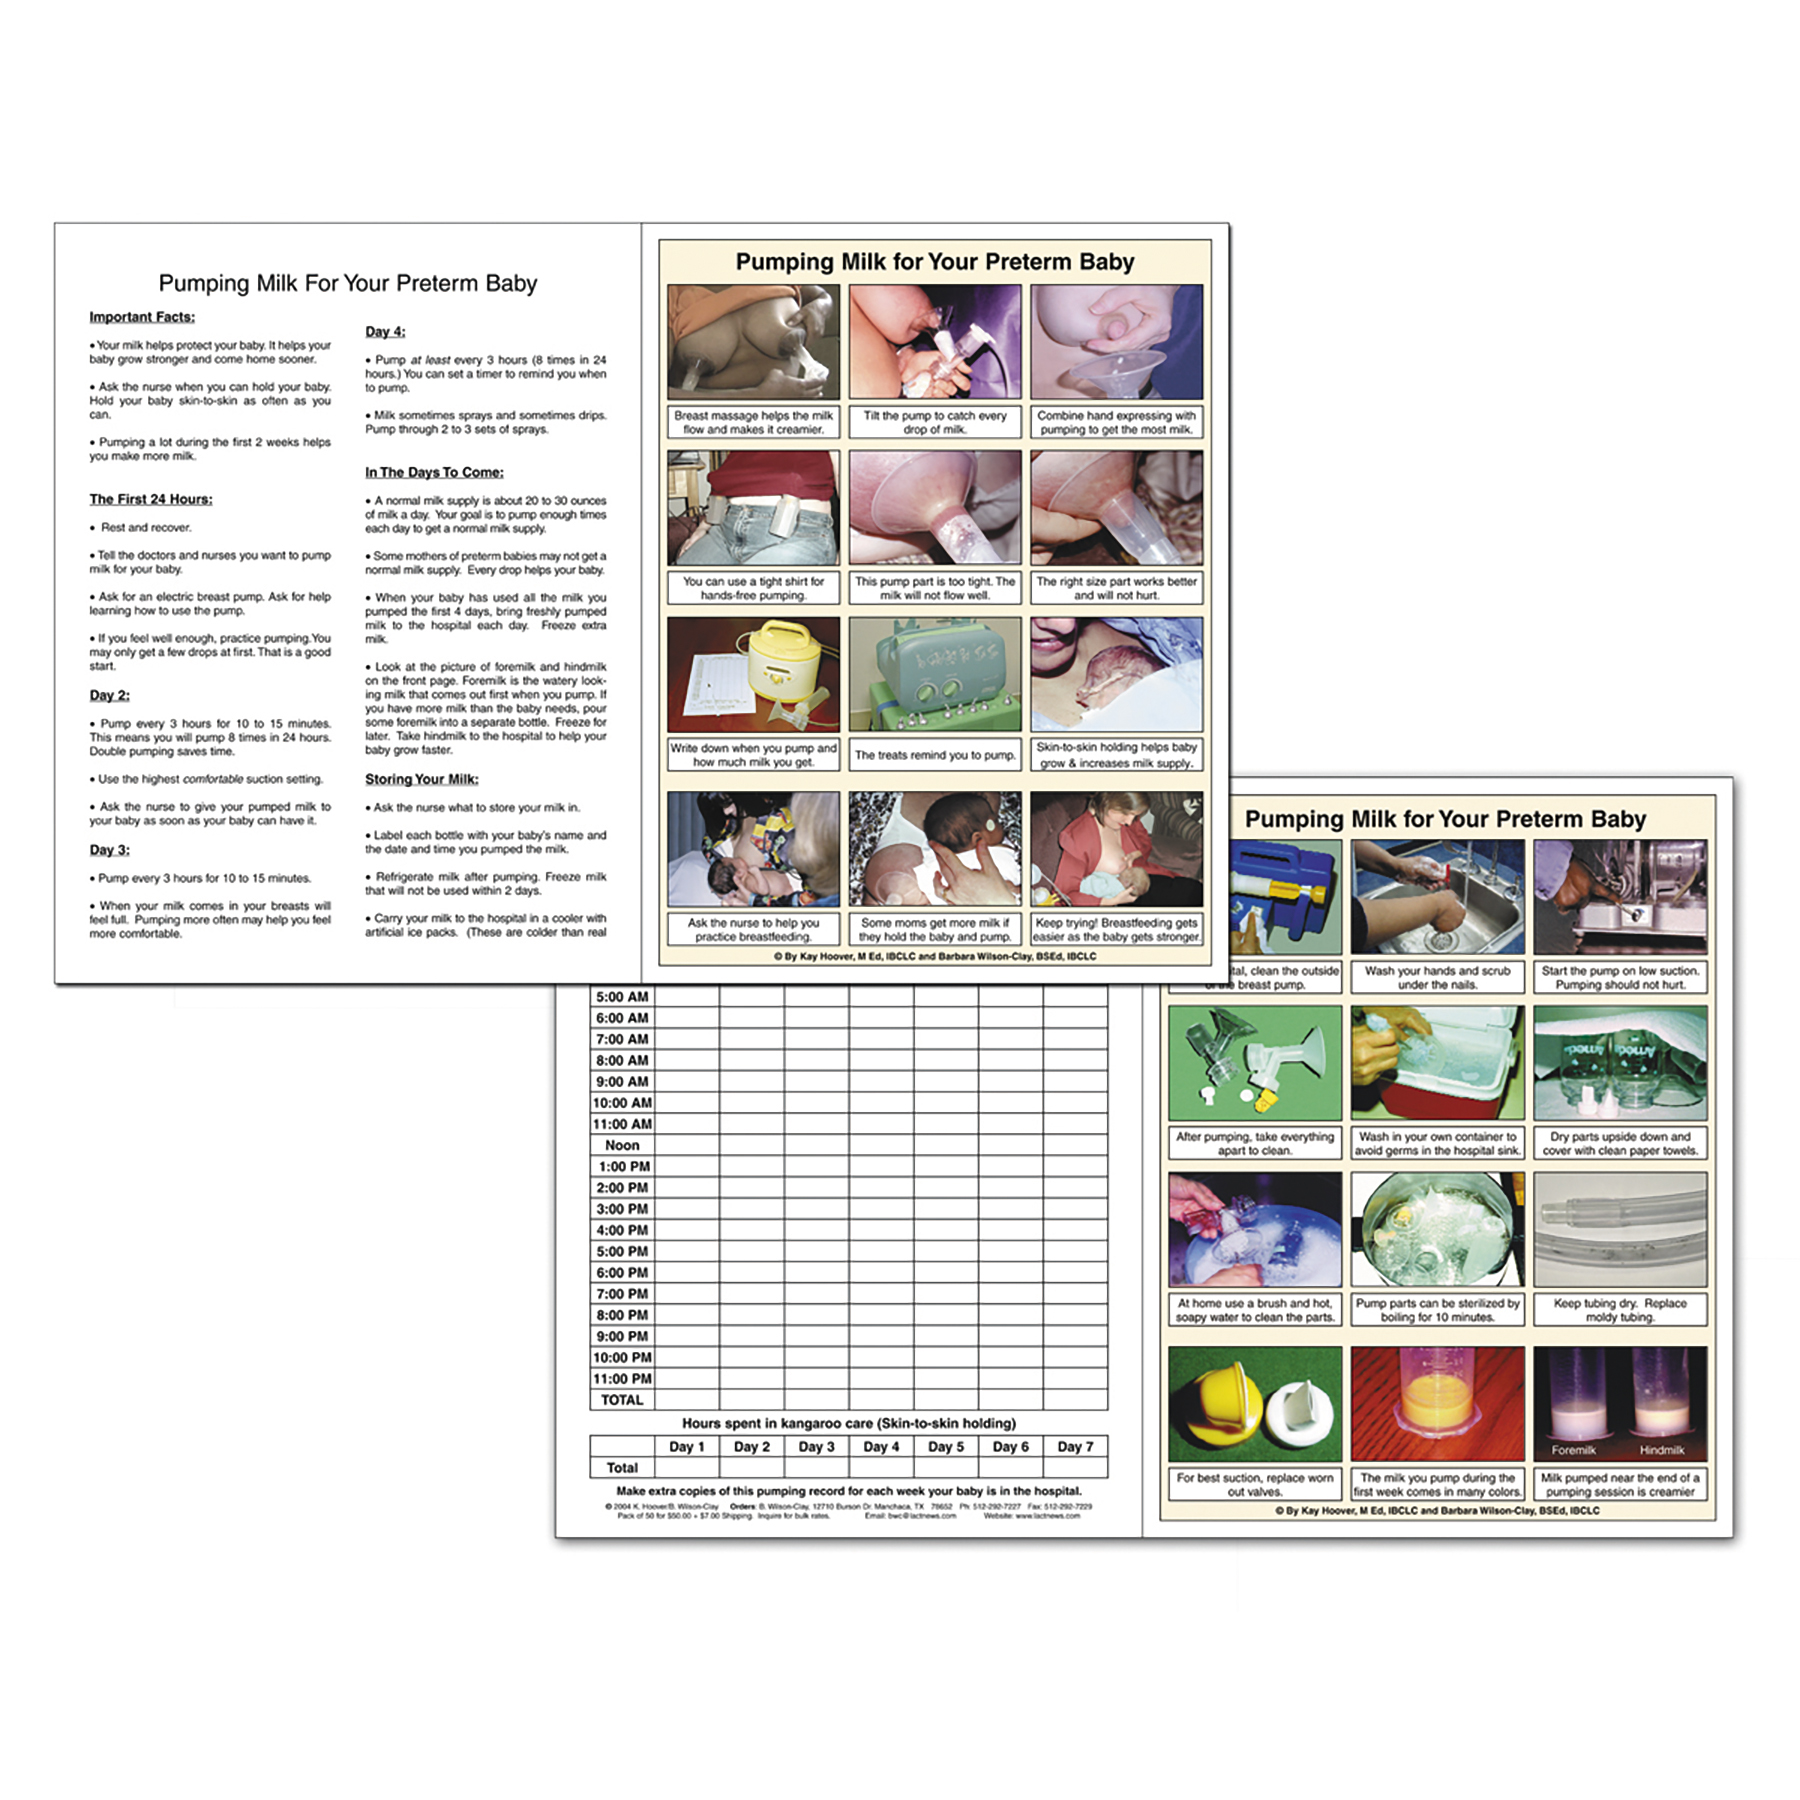 Pumping Milk for Your Preterm Baby full-color tear pad with photos and journal, Childbirth Graphics 52730